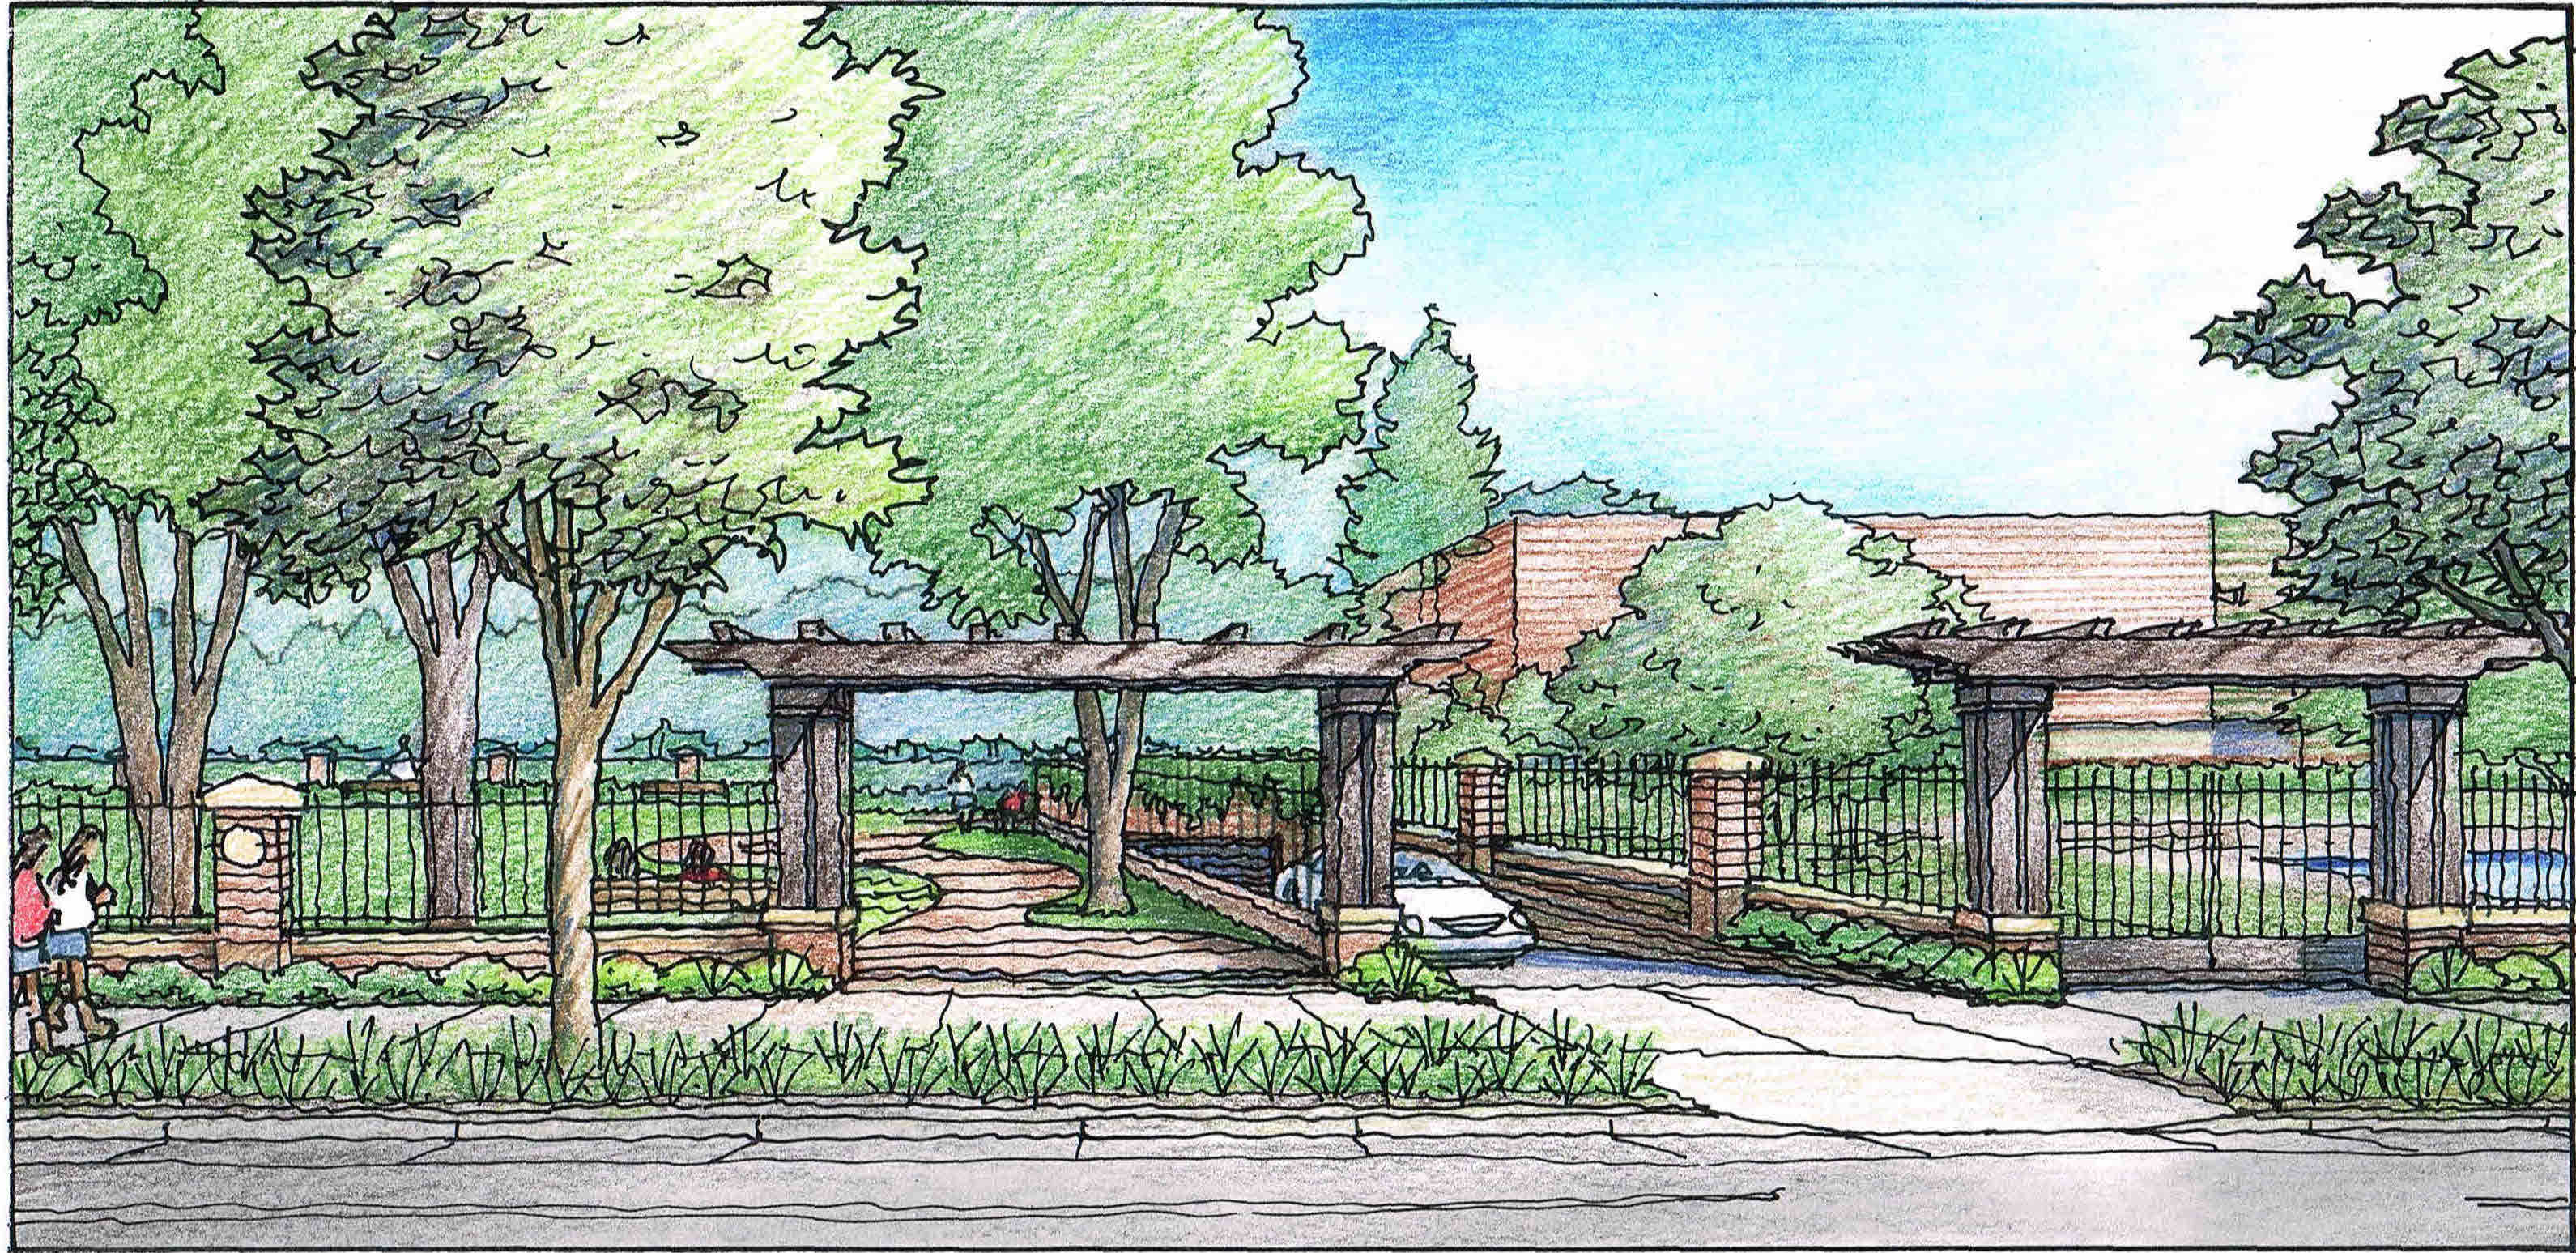 Rendering of proposed public park on campus